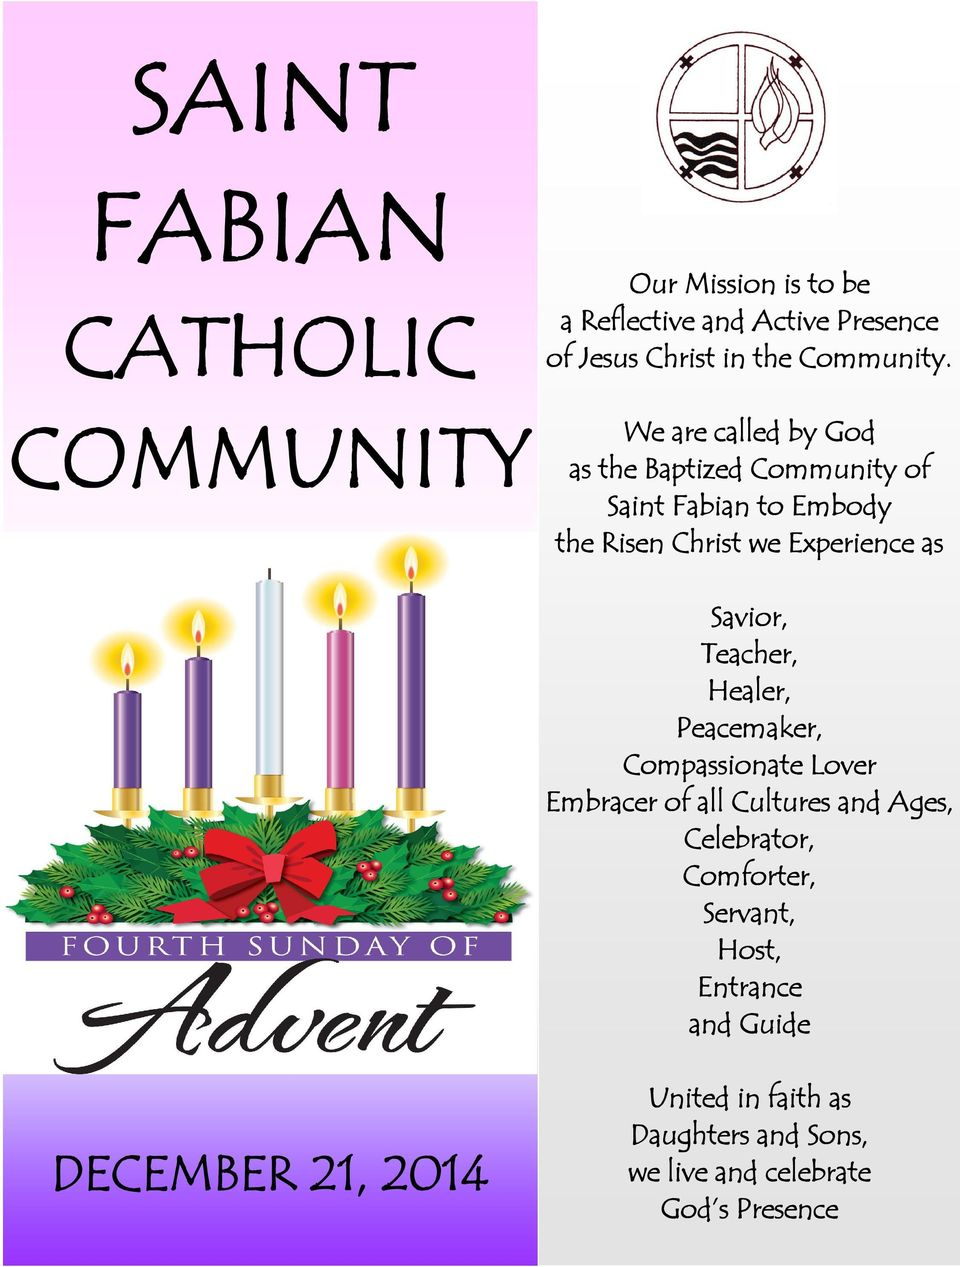 We are called by God as the Baptized Community of Saint Fabian to Embody the Risen Christ we Experience as Savior,